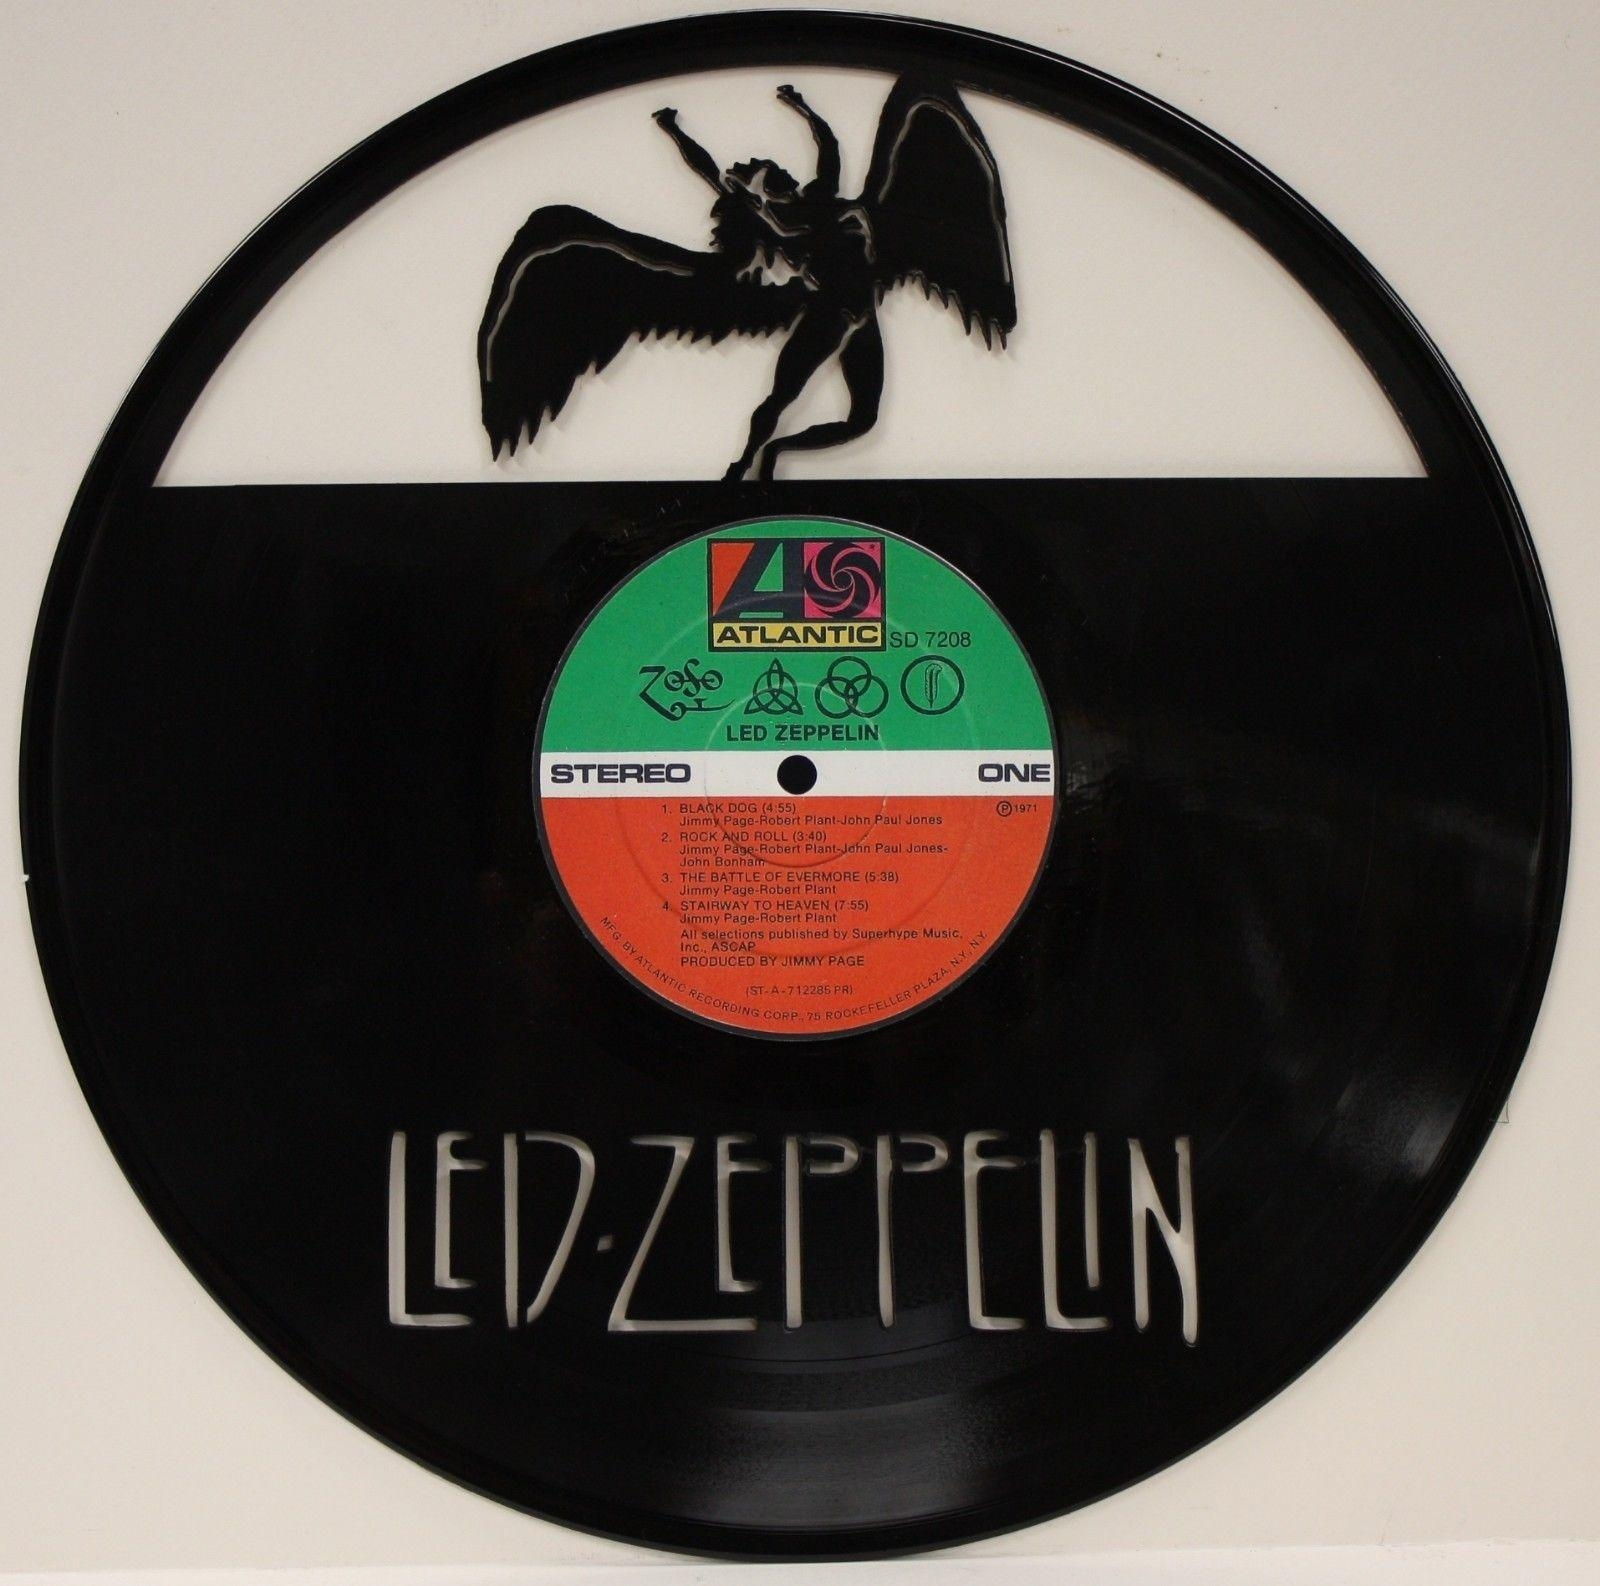 "Led Zeppelin Vinyl 12"" Lp Record Laser Cut Wall Art Display – Gold With Regard To Led Zeppelin Wall Art (Image 8 of 20)"